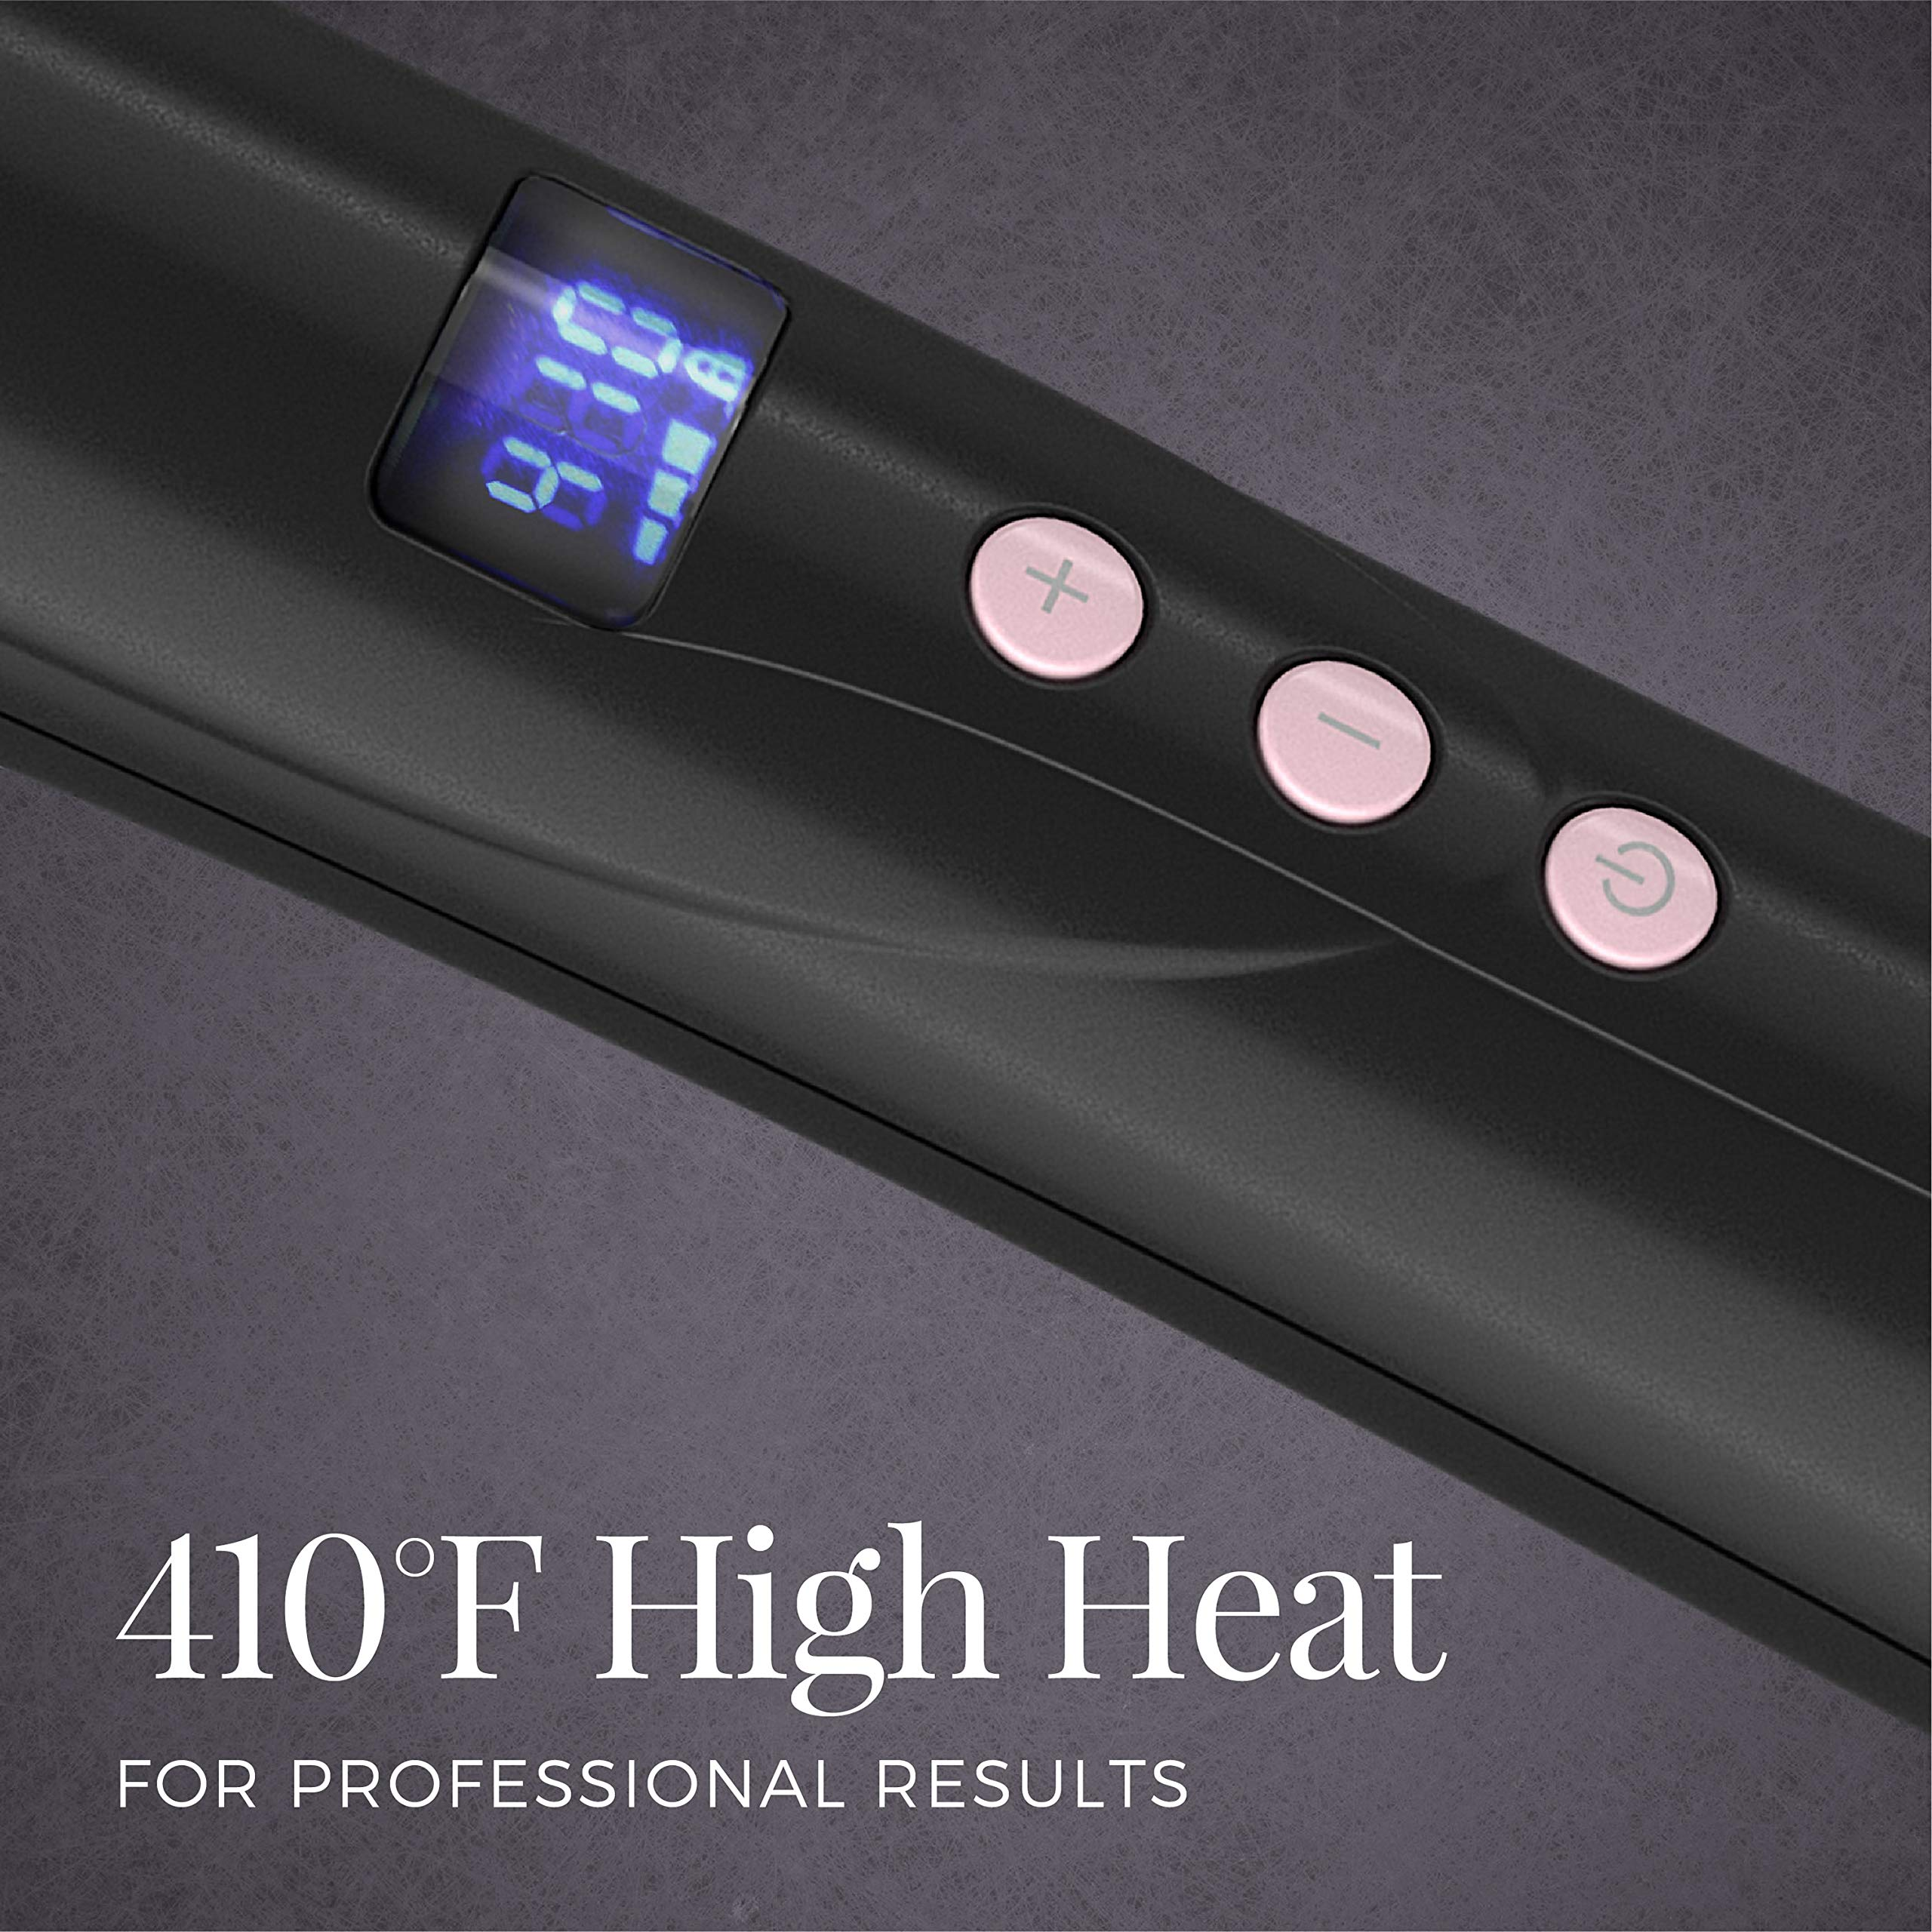 Remington Pro 1'' - 1 ½'' Curling Wand with Pearl Ceramic Technology and Digital Controls, CI9538 by Remington (Image #4)